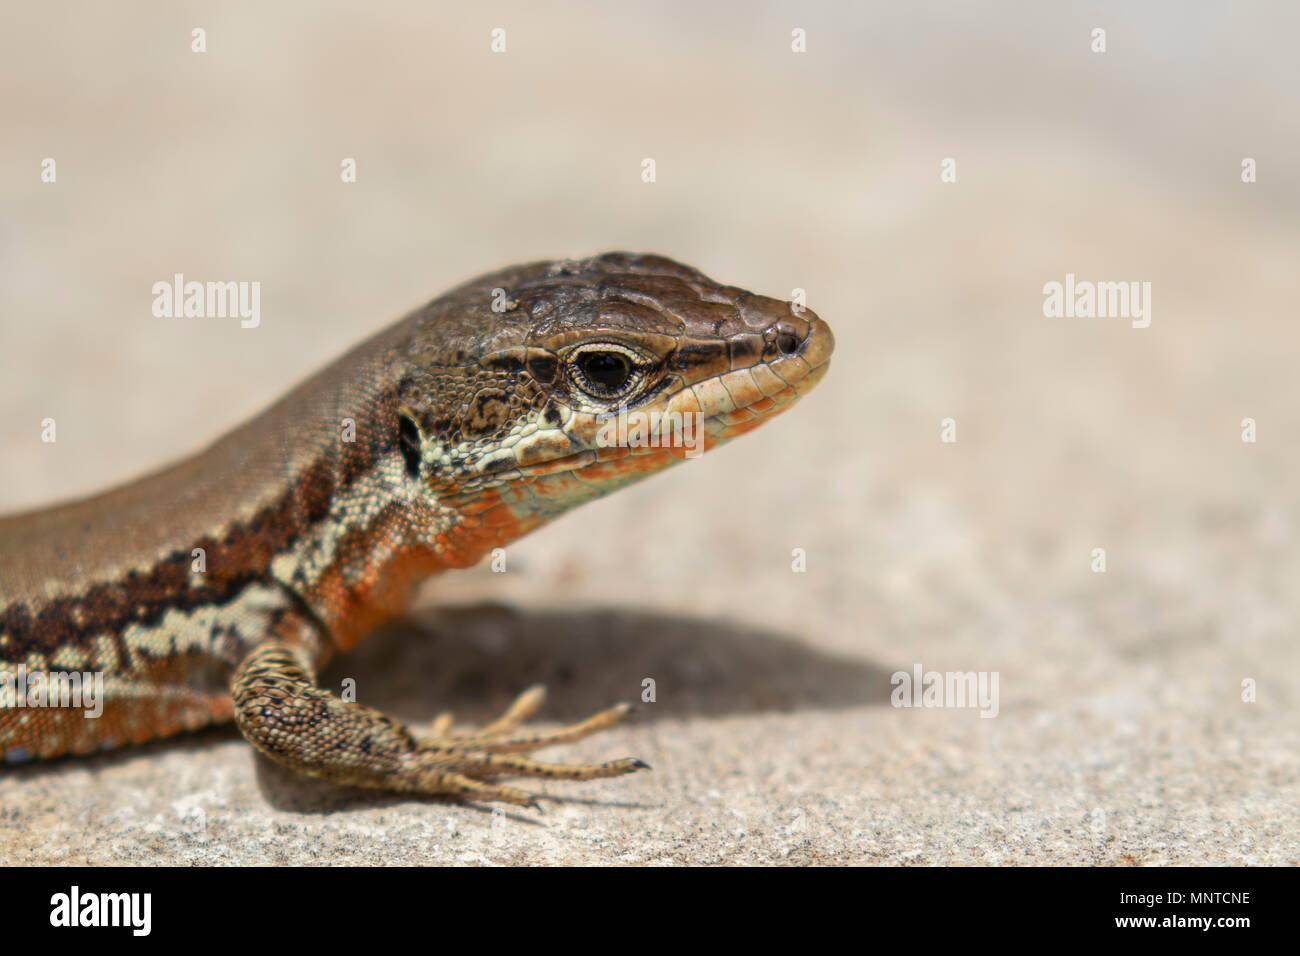 Troodos Lizard, Phoenicolacerta troodica, resting on the ground and on a branch in a garden on cyprus during may. - Stock Image